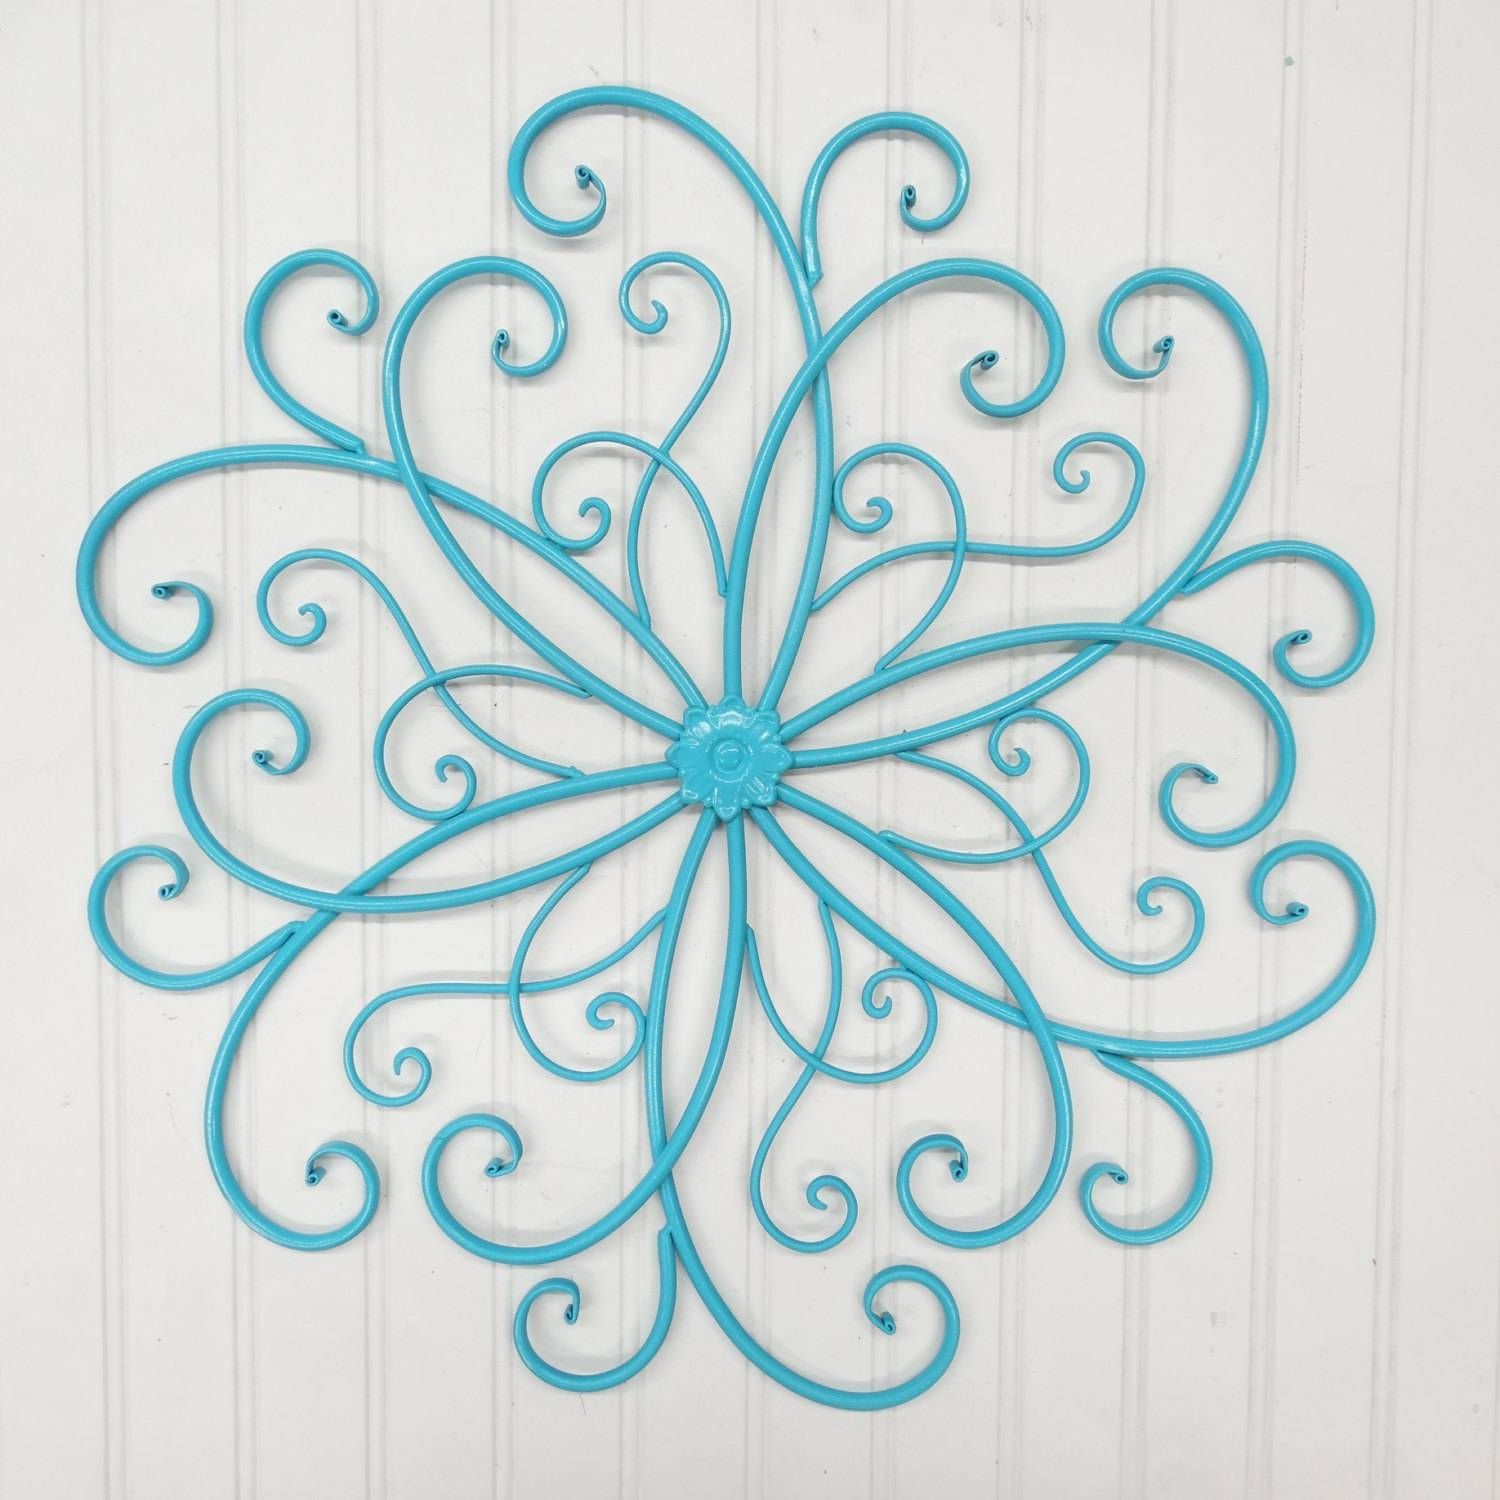 Outdoor Metal Wall Art/wall Decor/faux Wrought Iron/metal Wall Pertaining To Most Recent Wrought Iron Metal Wall Art (View 9 of 20)